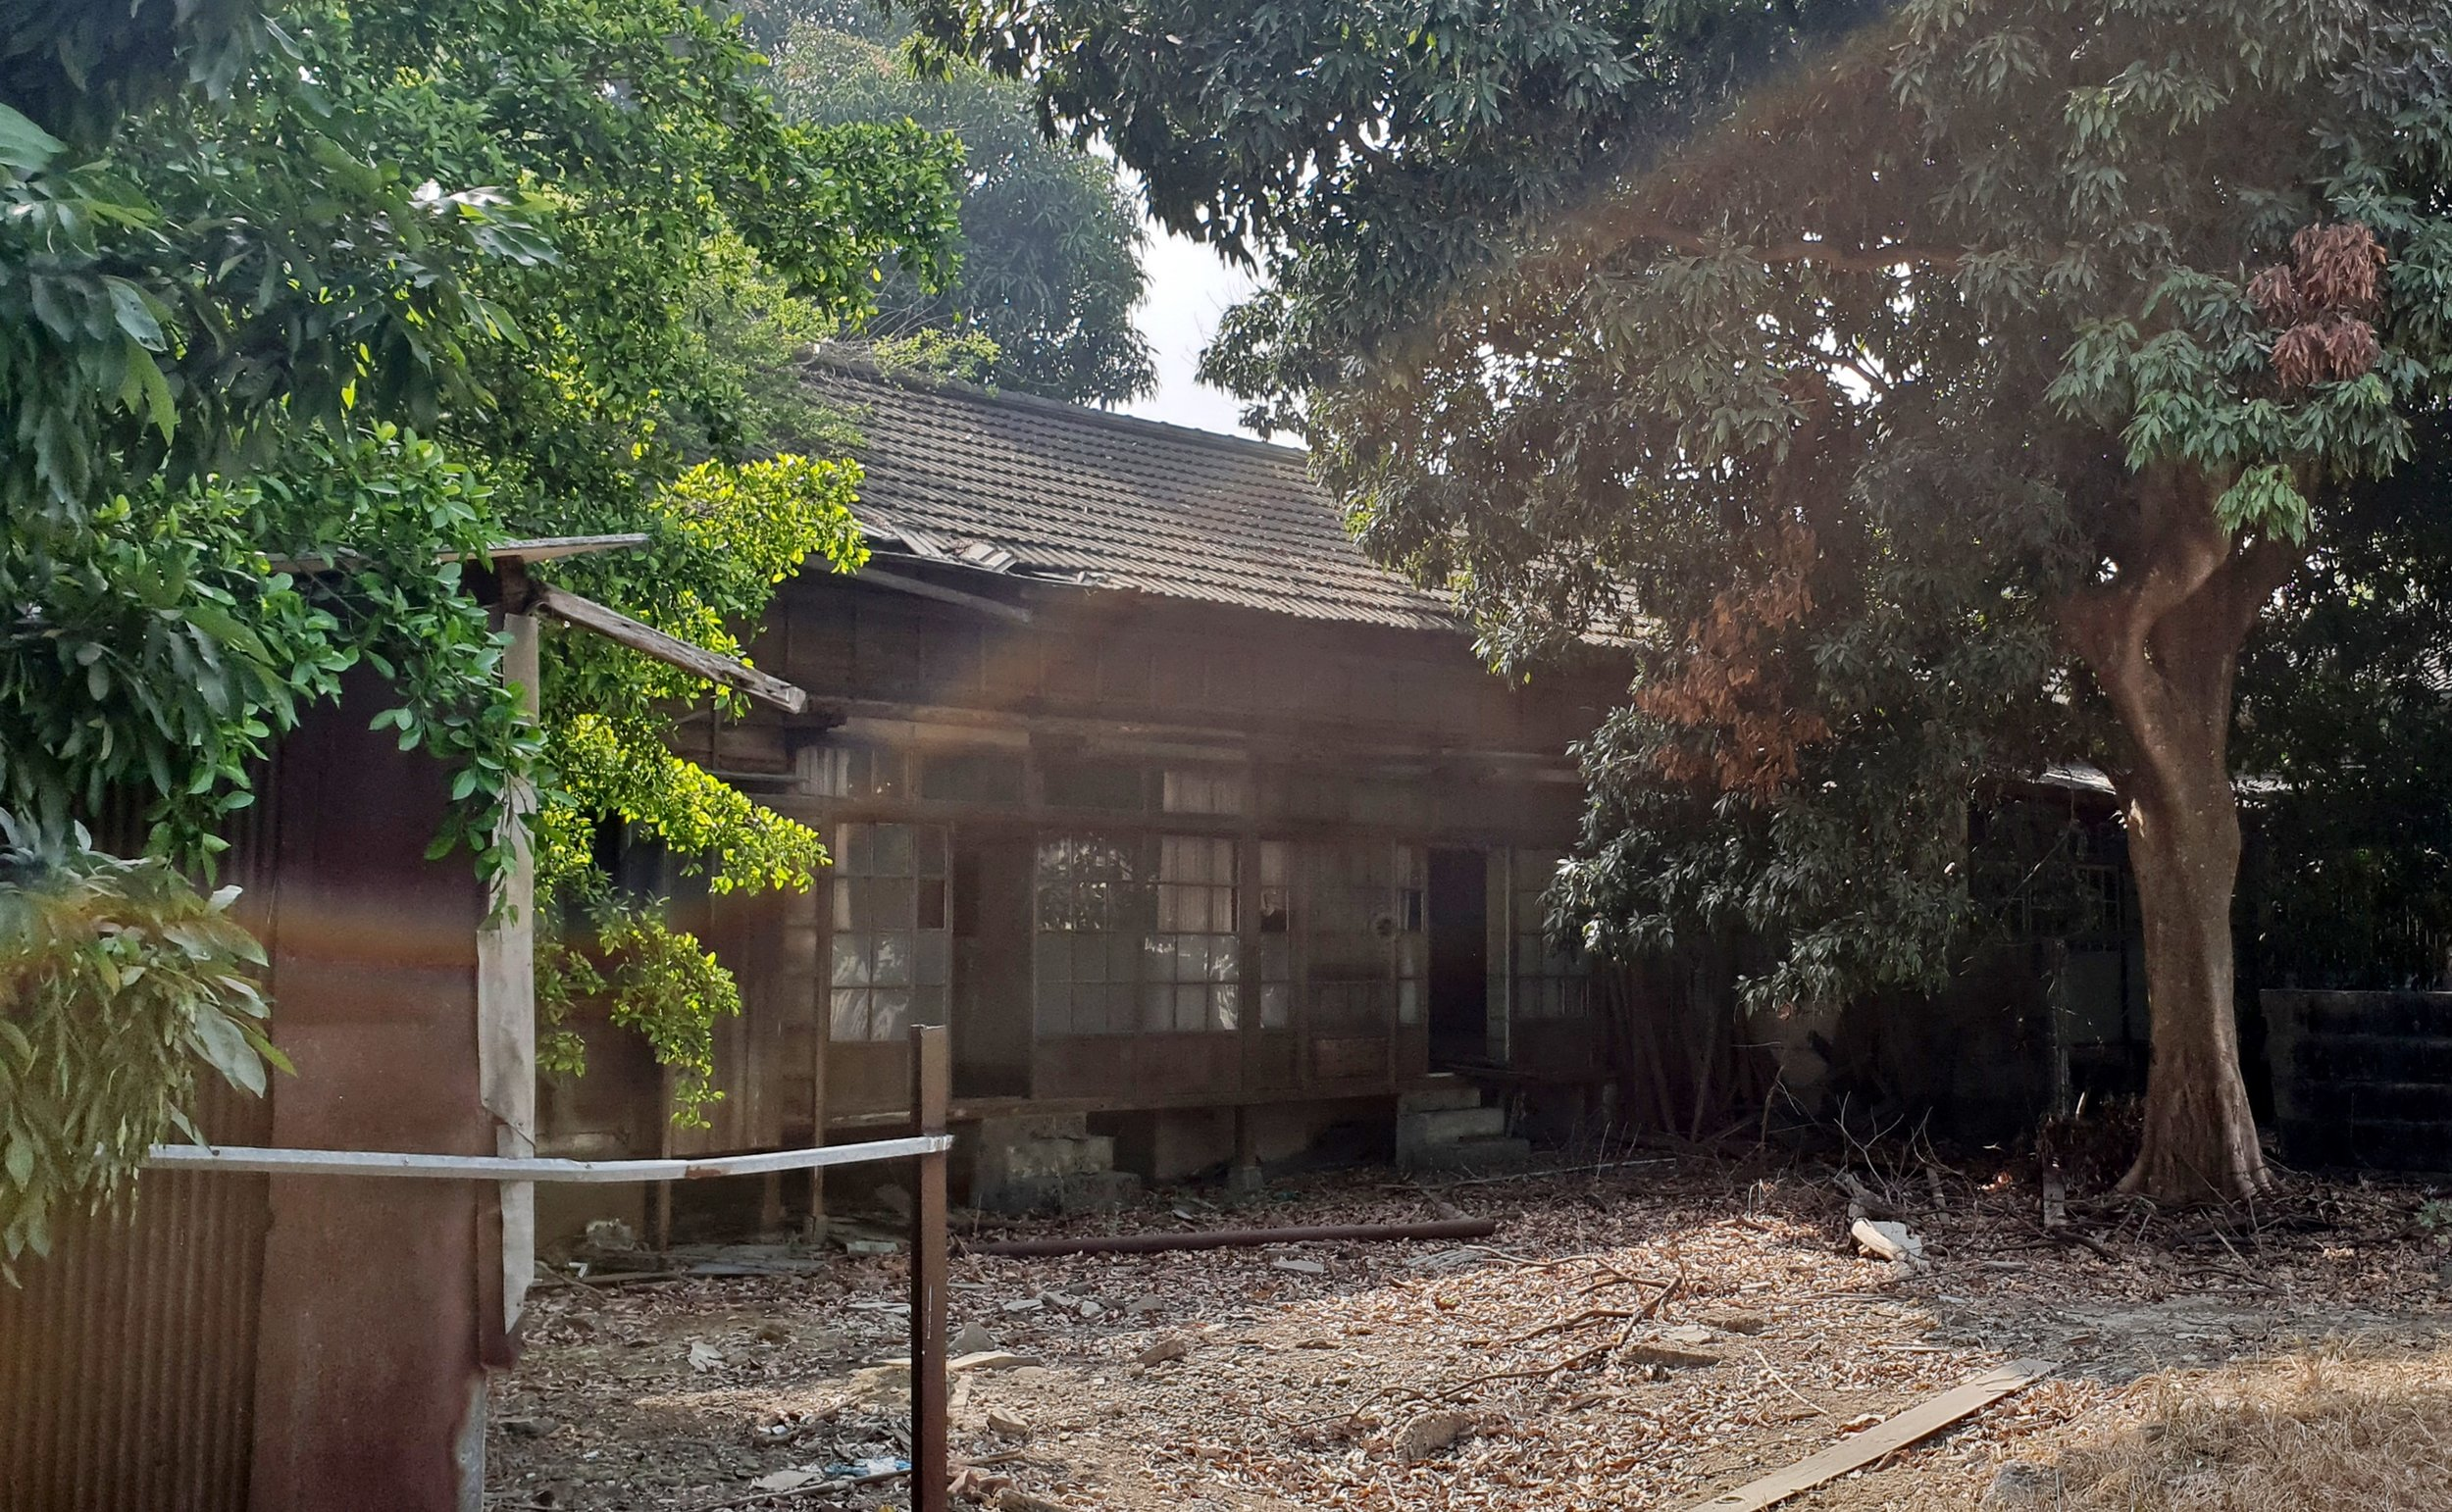 One of the few wooden houses left and the area where there used to be many